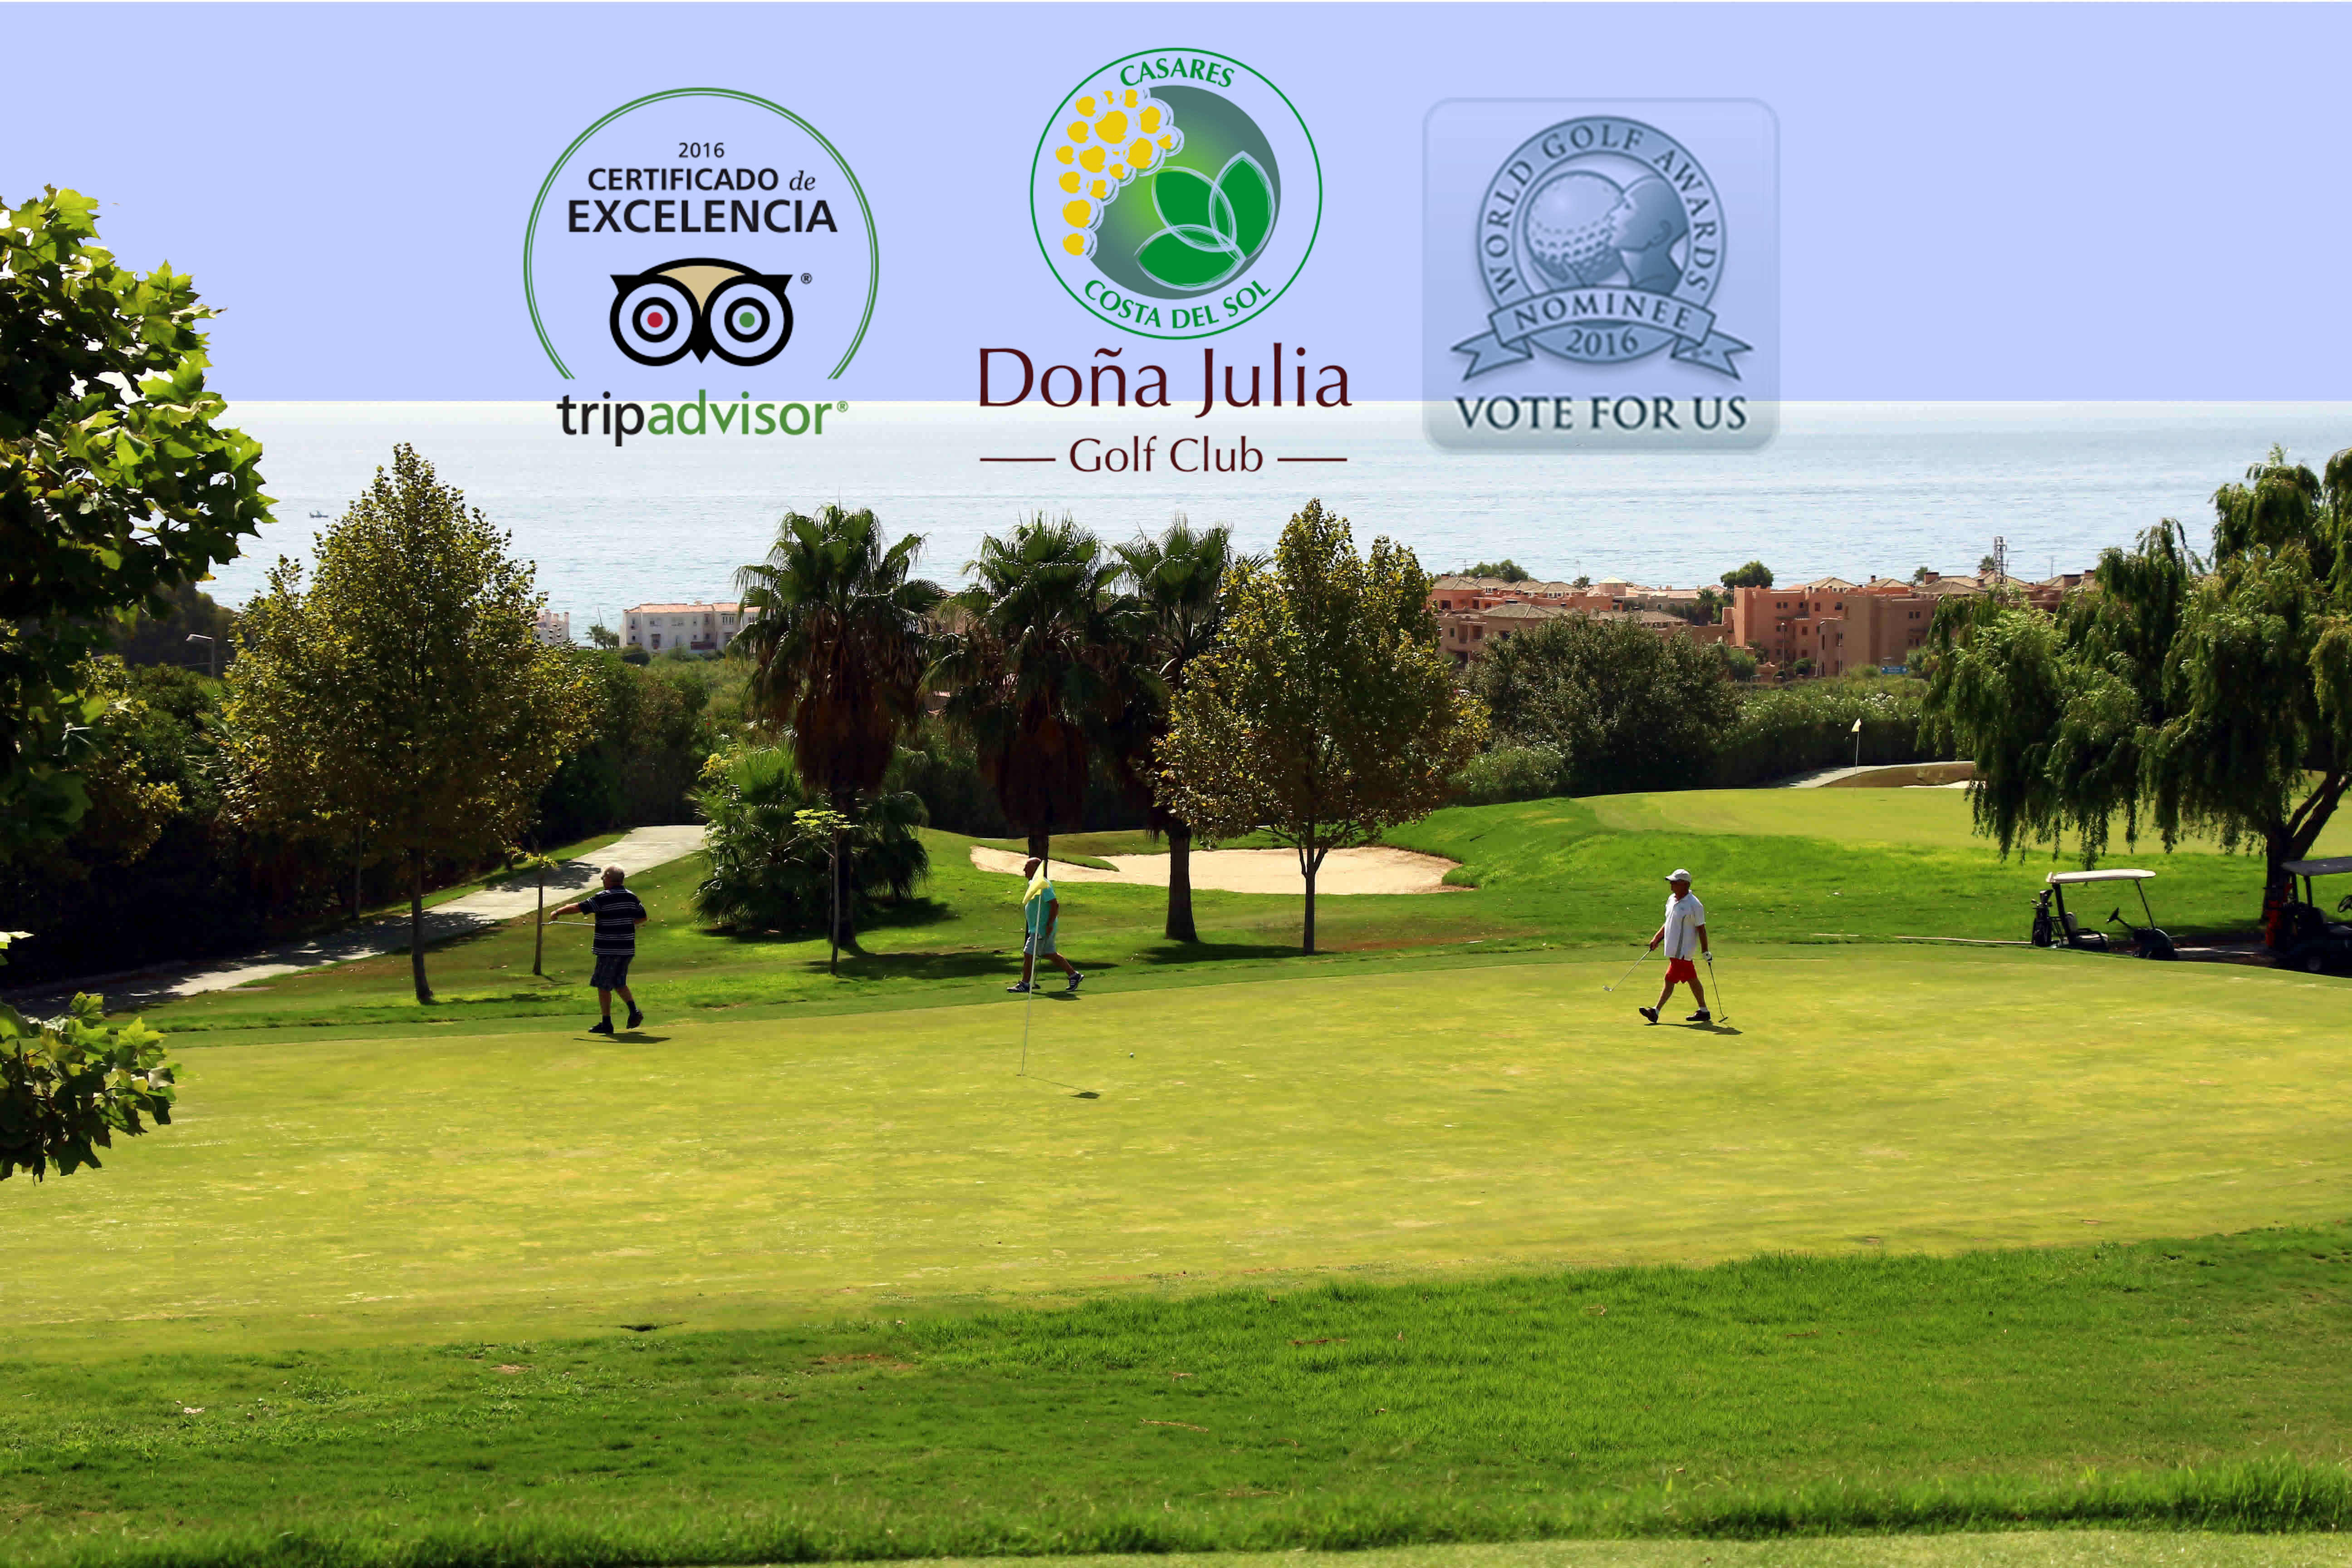 "Tripadvisor brinda en el 2016 a Doña Julia Golf Club con el ""Certificado de Excelencia"" y World Golf Awards nomina como Mejor Campo de Golf de España"